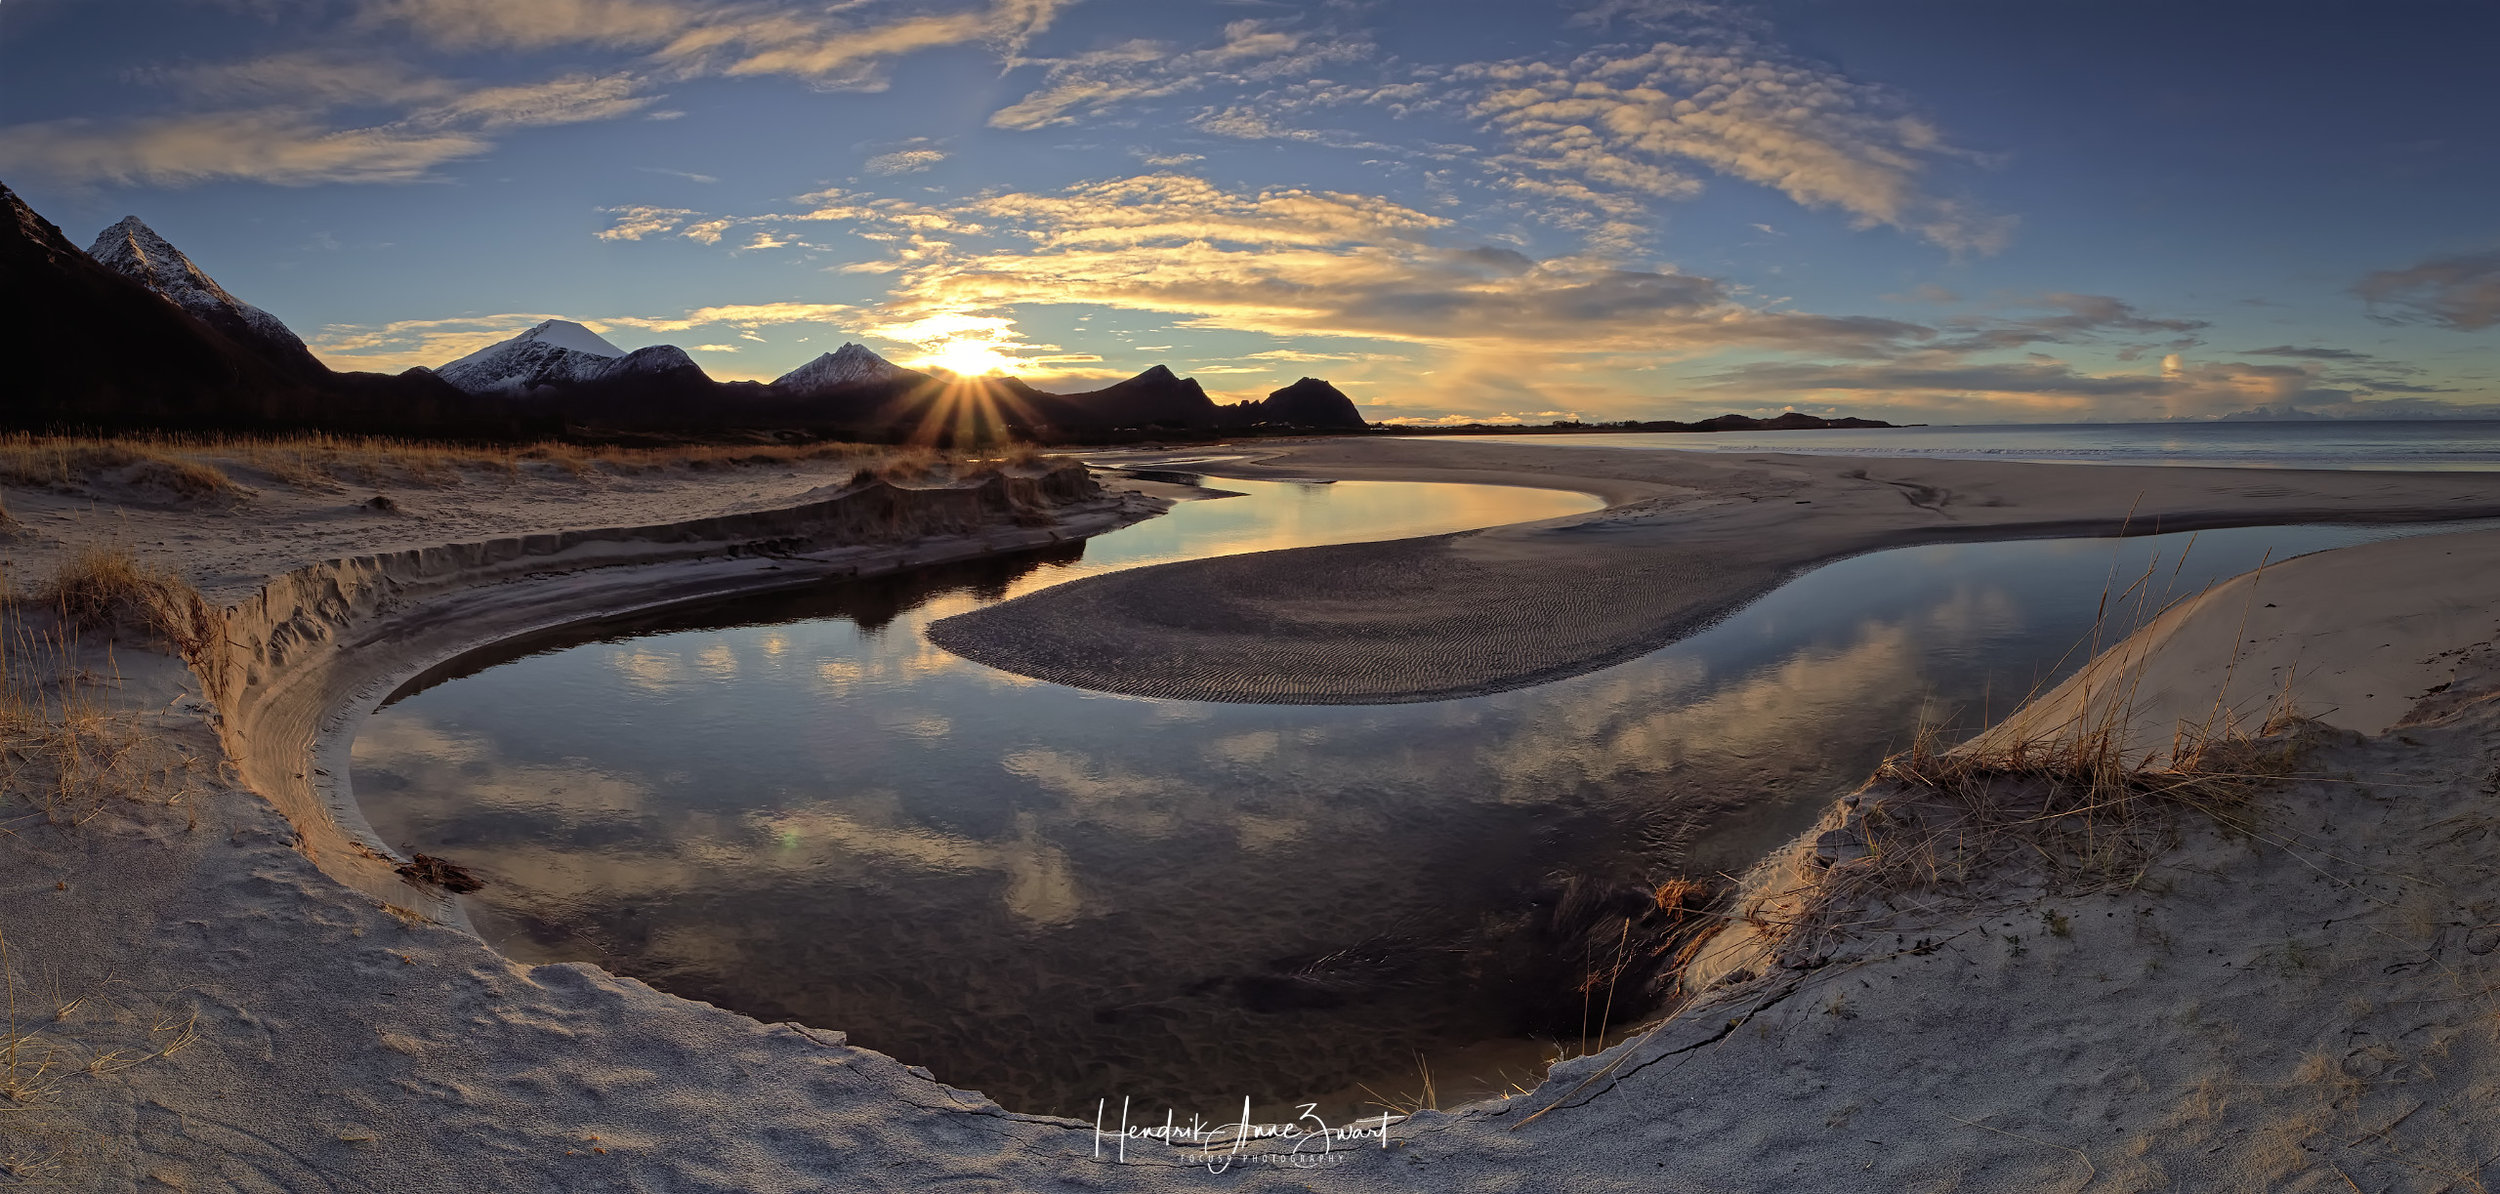 Bo_Norway_Sunset_1_1.jpg